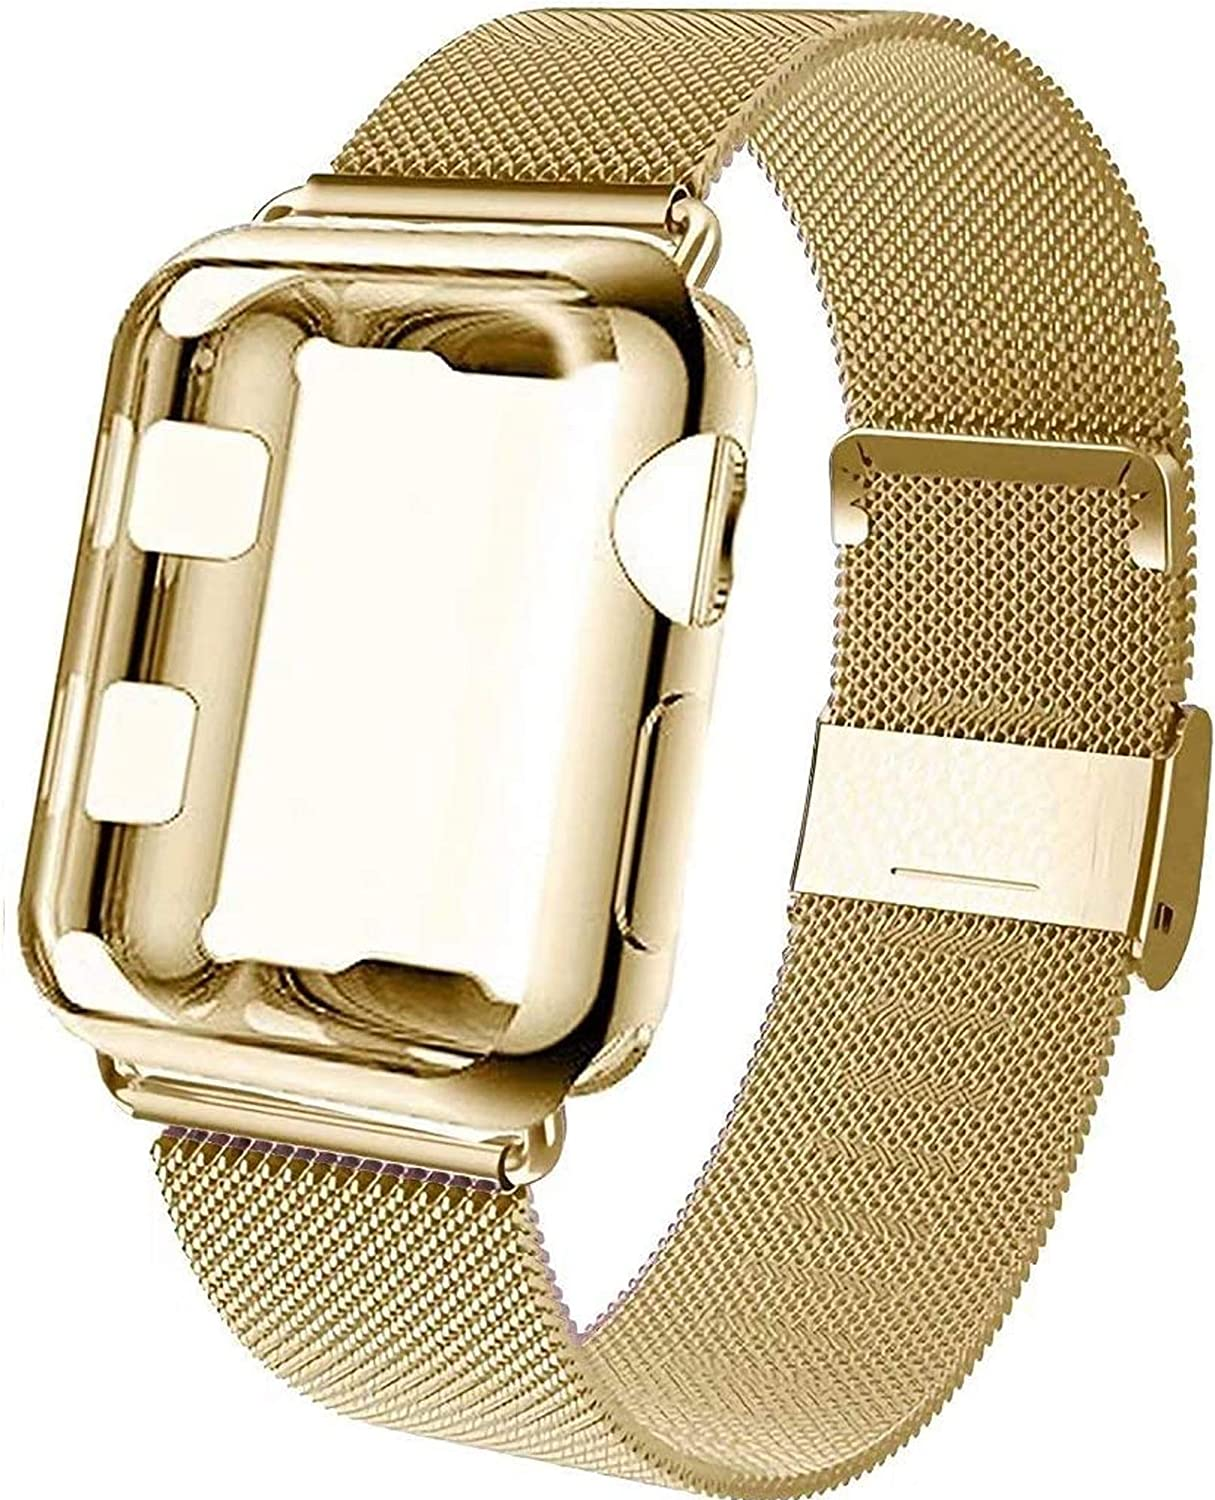 GBPOOT Compatible for Apple Watch Band 38mm 40mm 42mm 44mm with Screen Protector Case, Sports Wristband Strap Replacement Band with Protective Case for Iwatch Series 6/SE/5/4/3/2/1,42mm,Yellow Gold